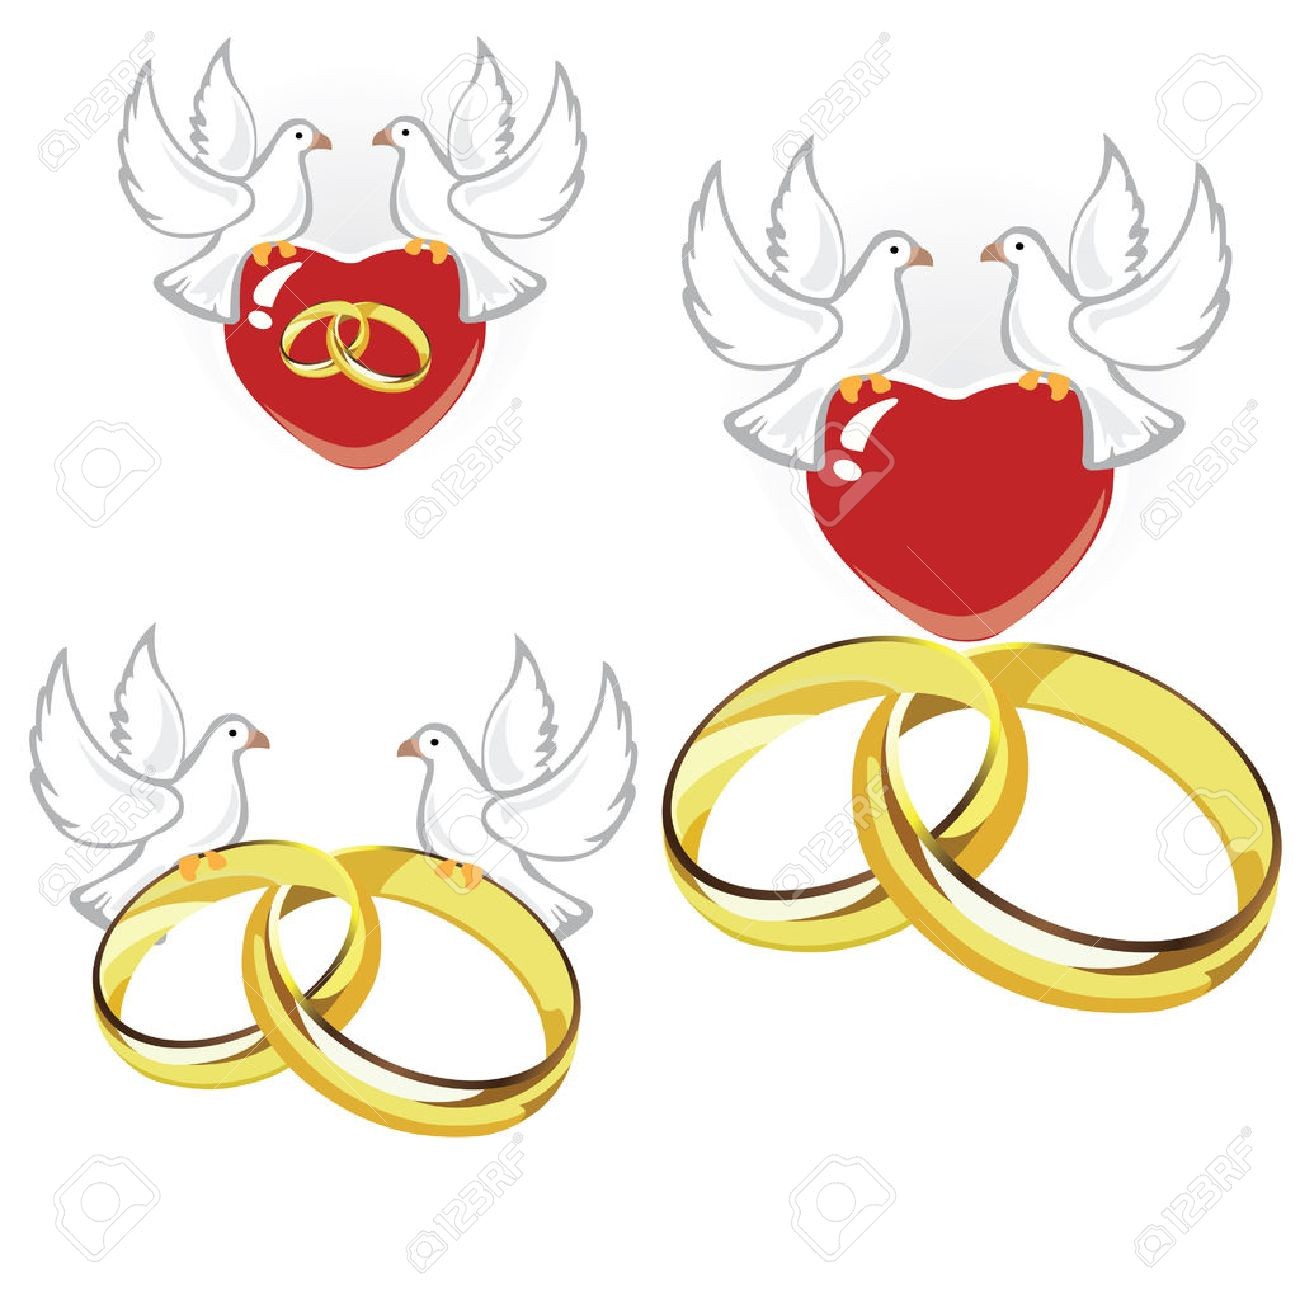 Wedding Rings Hearts And Doves Royalty Free Cliparts Vectors